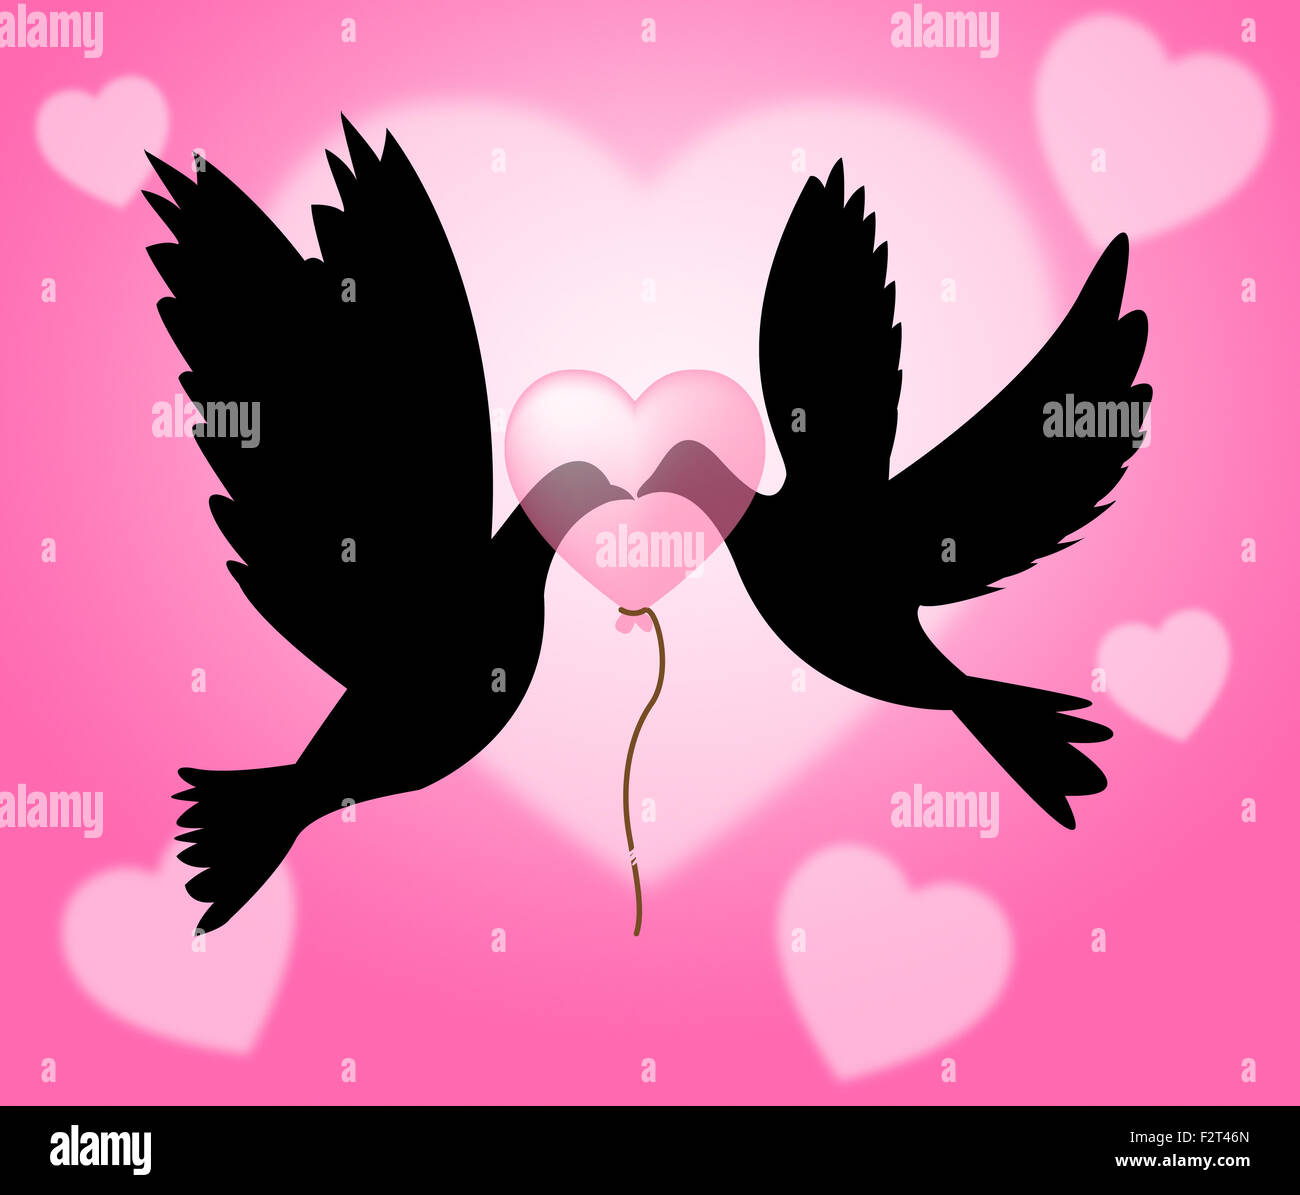 Peace Doves Meaning Love Not War And Flock Of Birds Stock